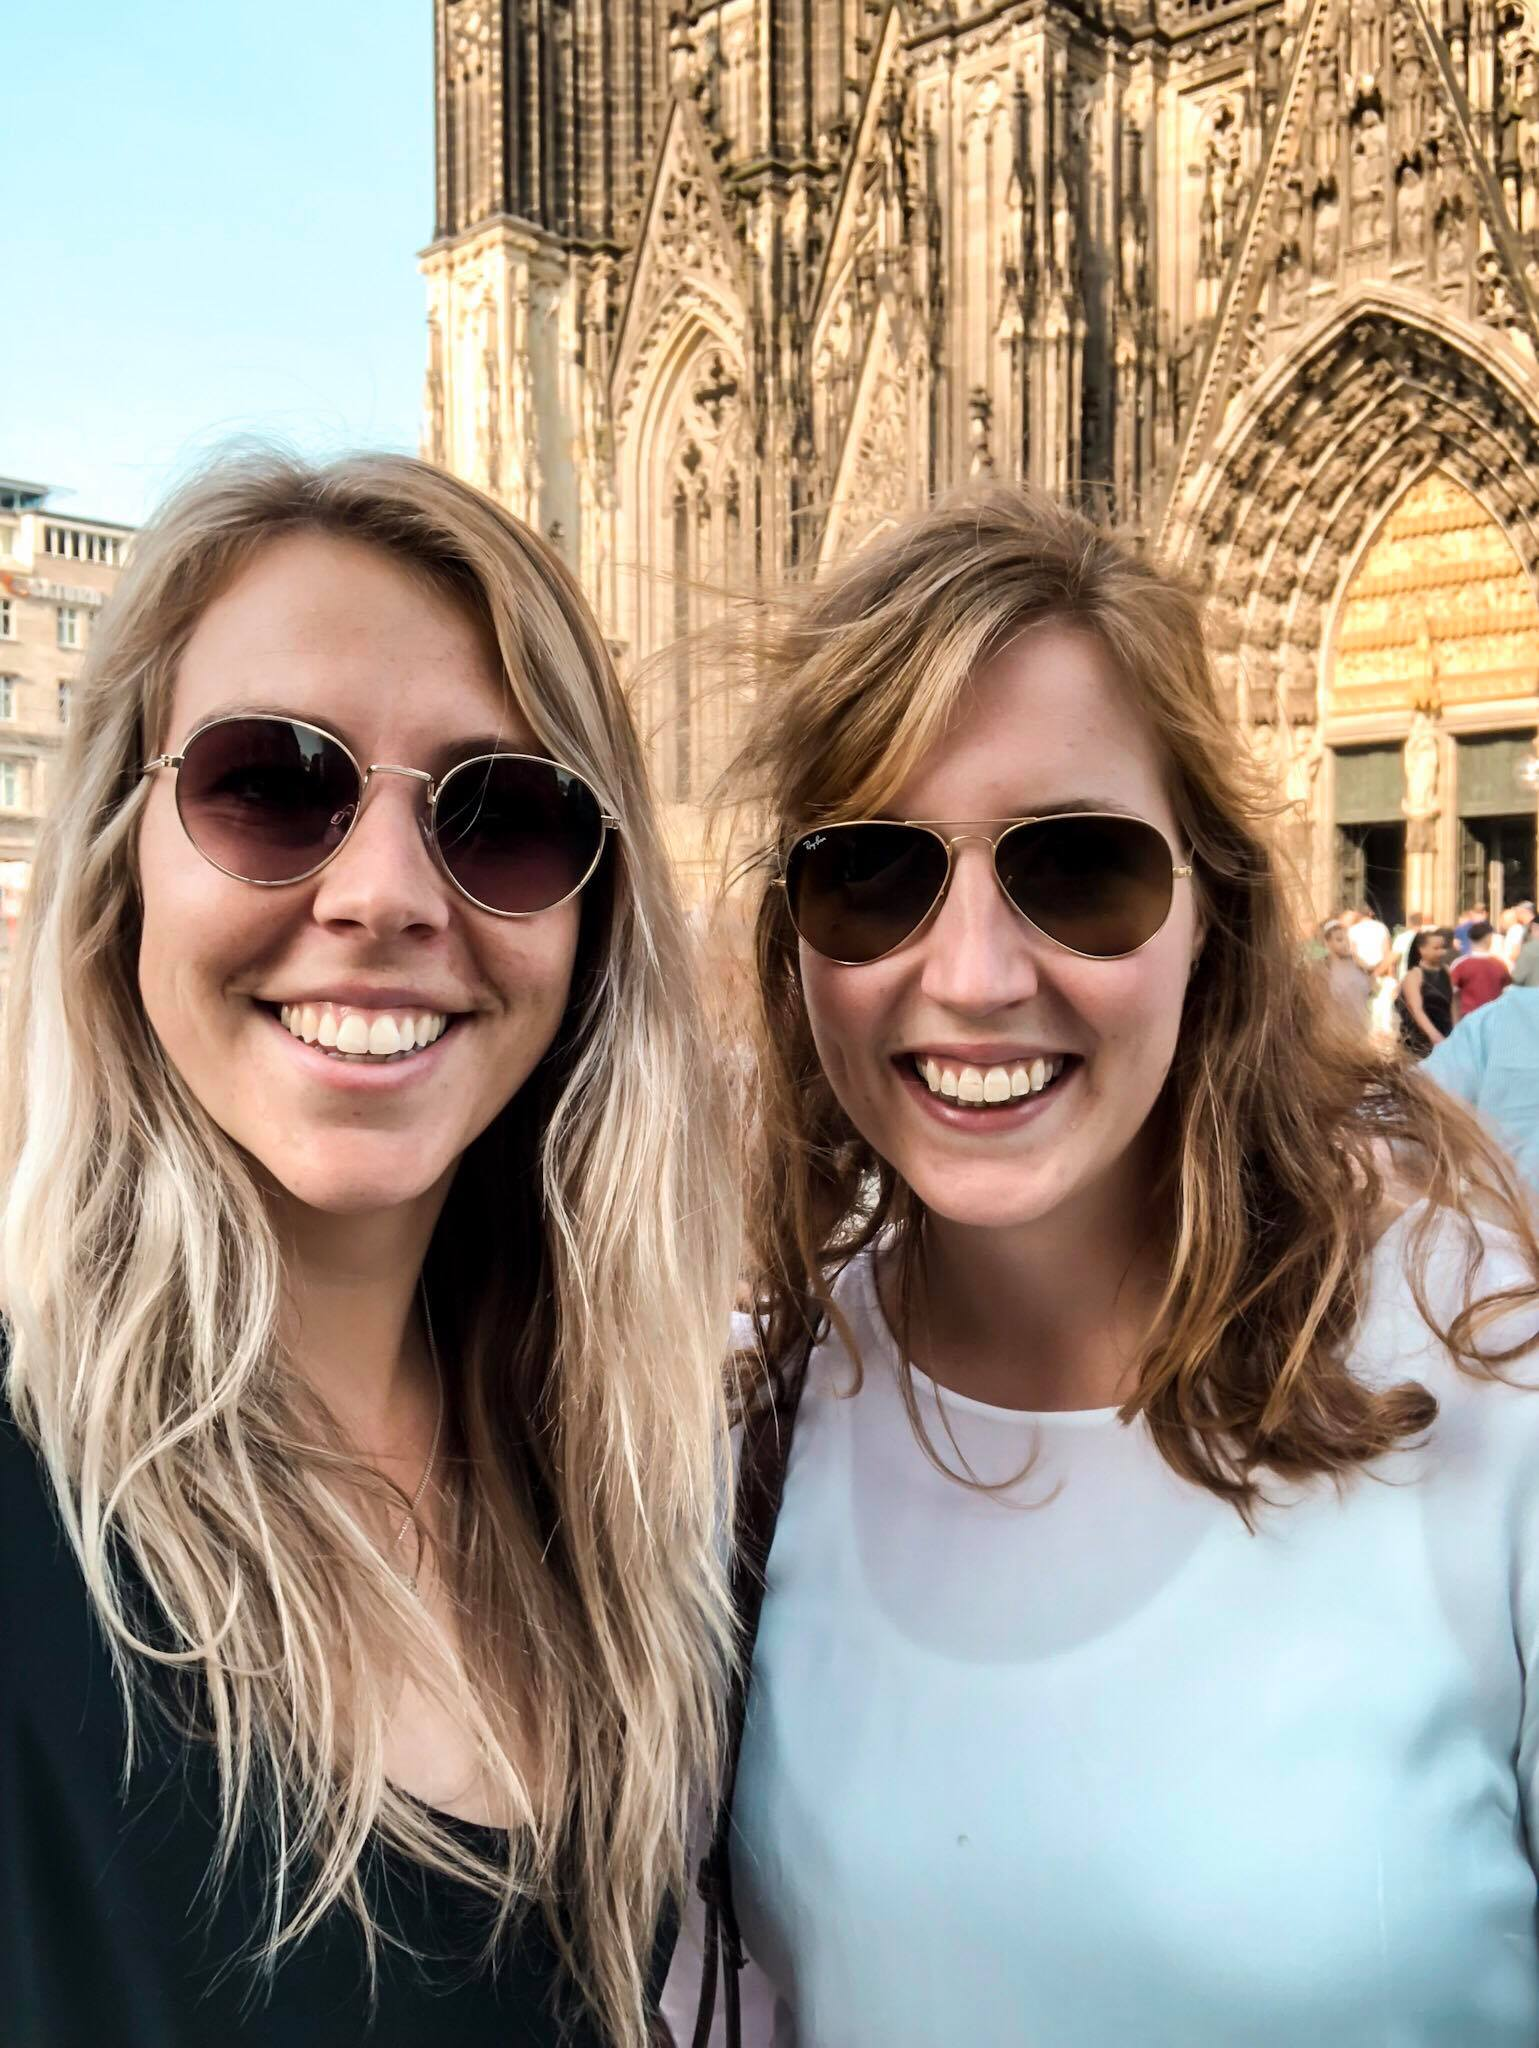 My friend and I in front of the Cologne Cathedral